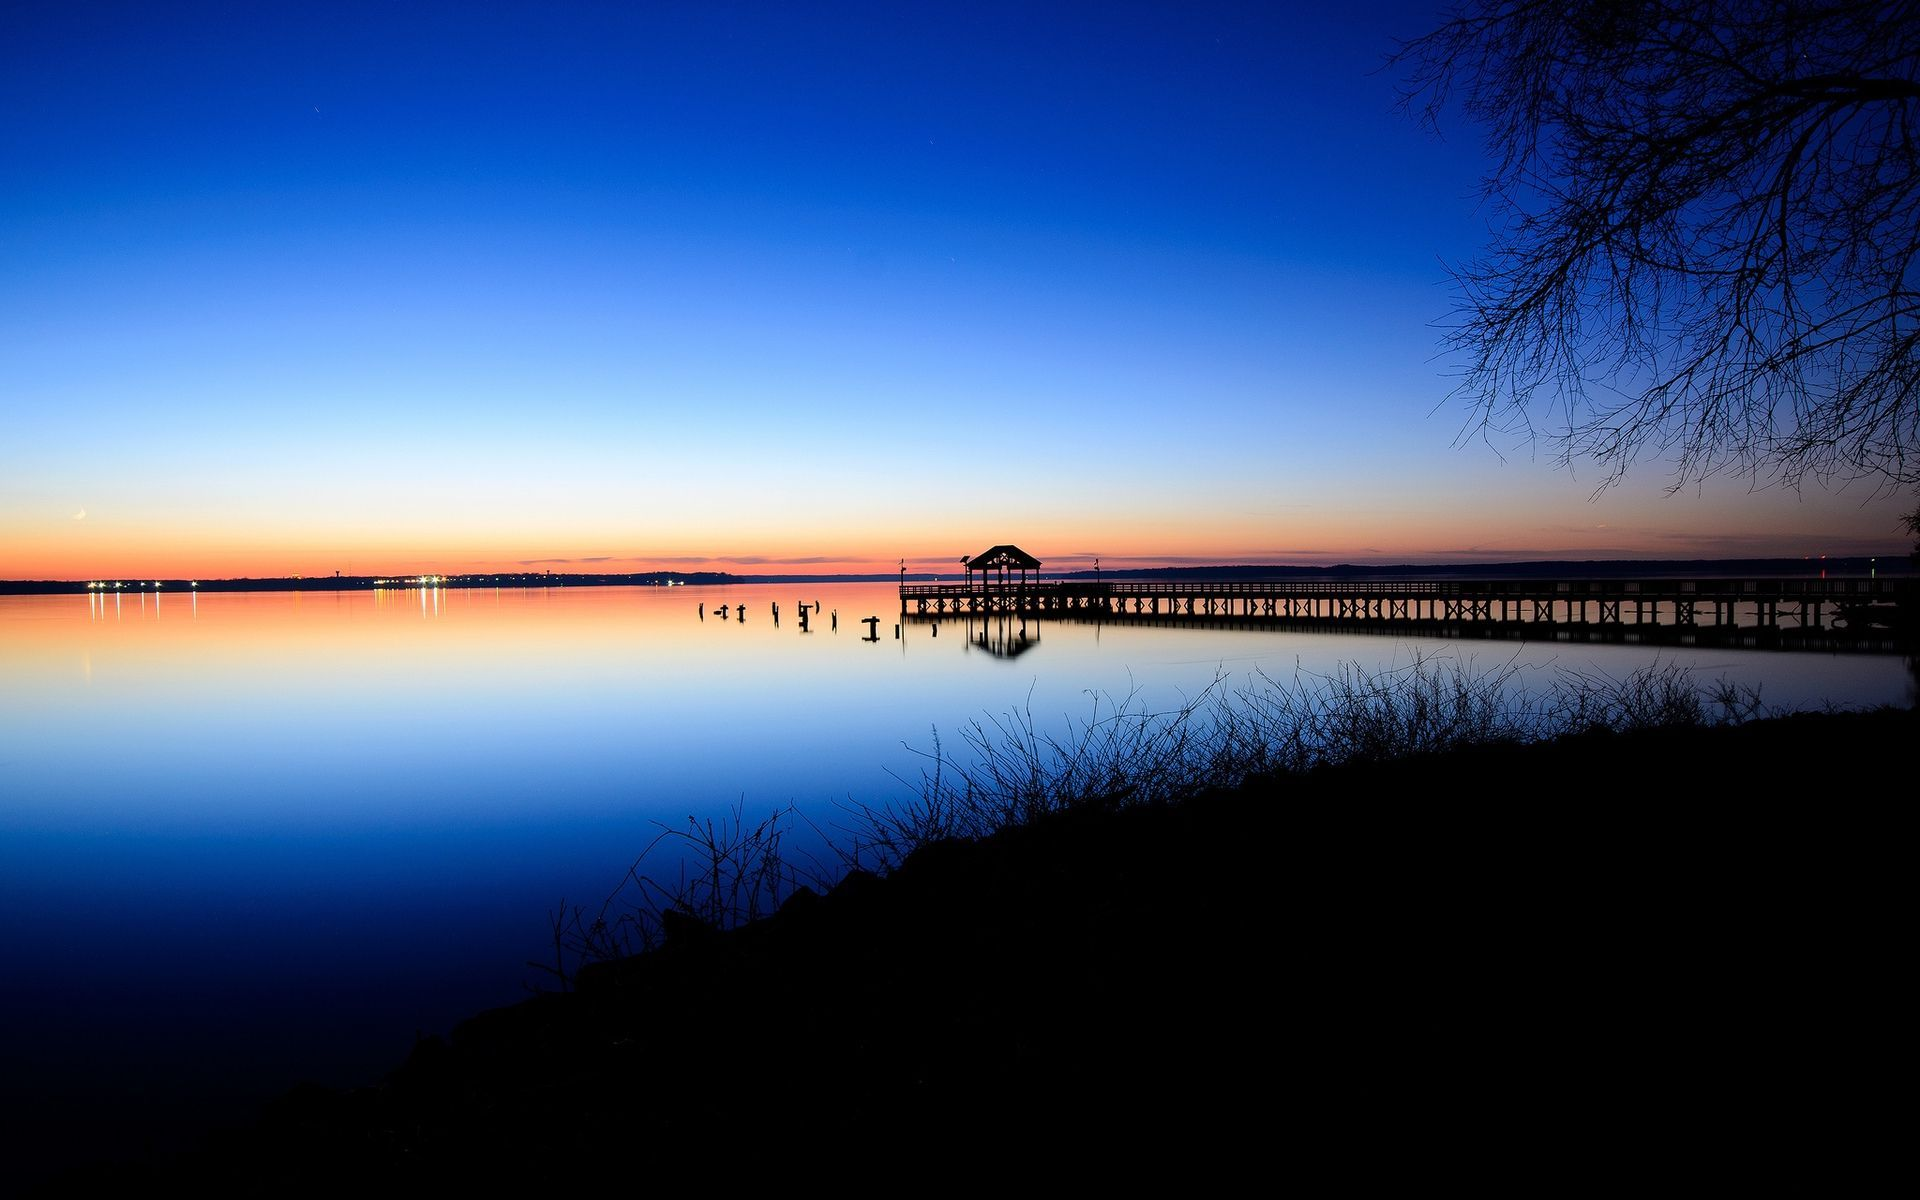 Sunset over the calm water